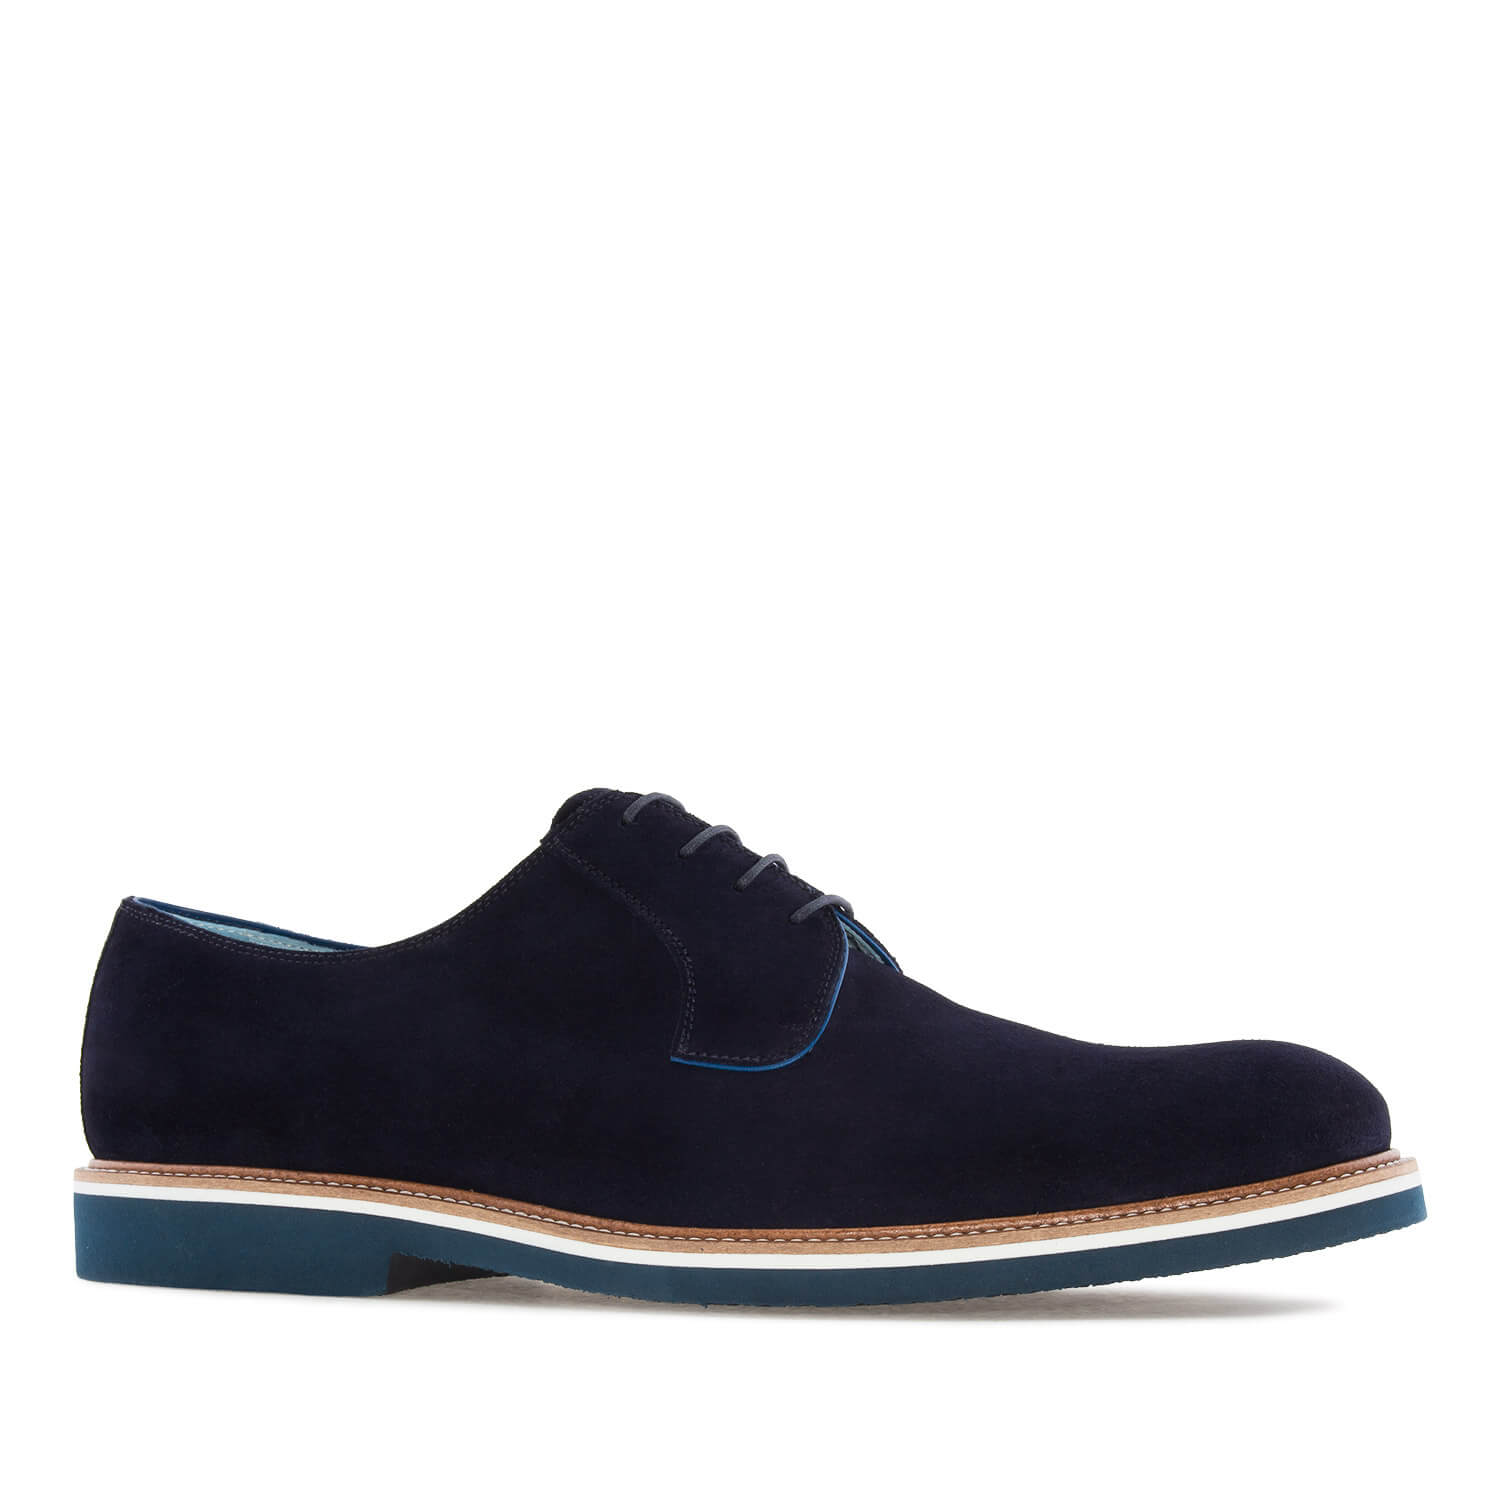 Oxford Shoes in Blue Split Leather